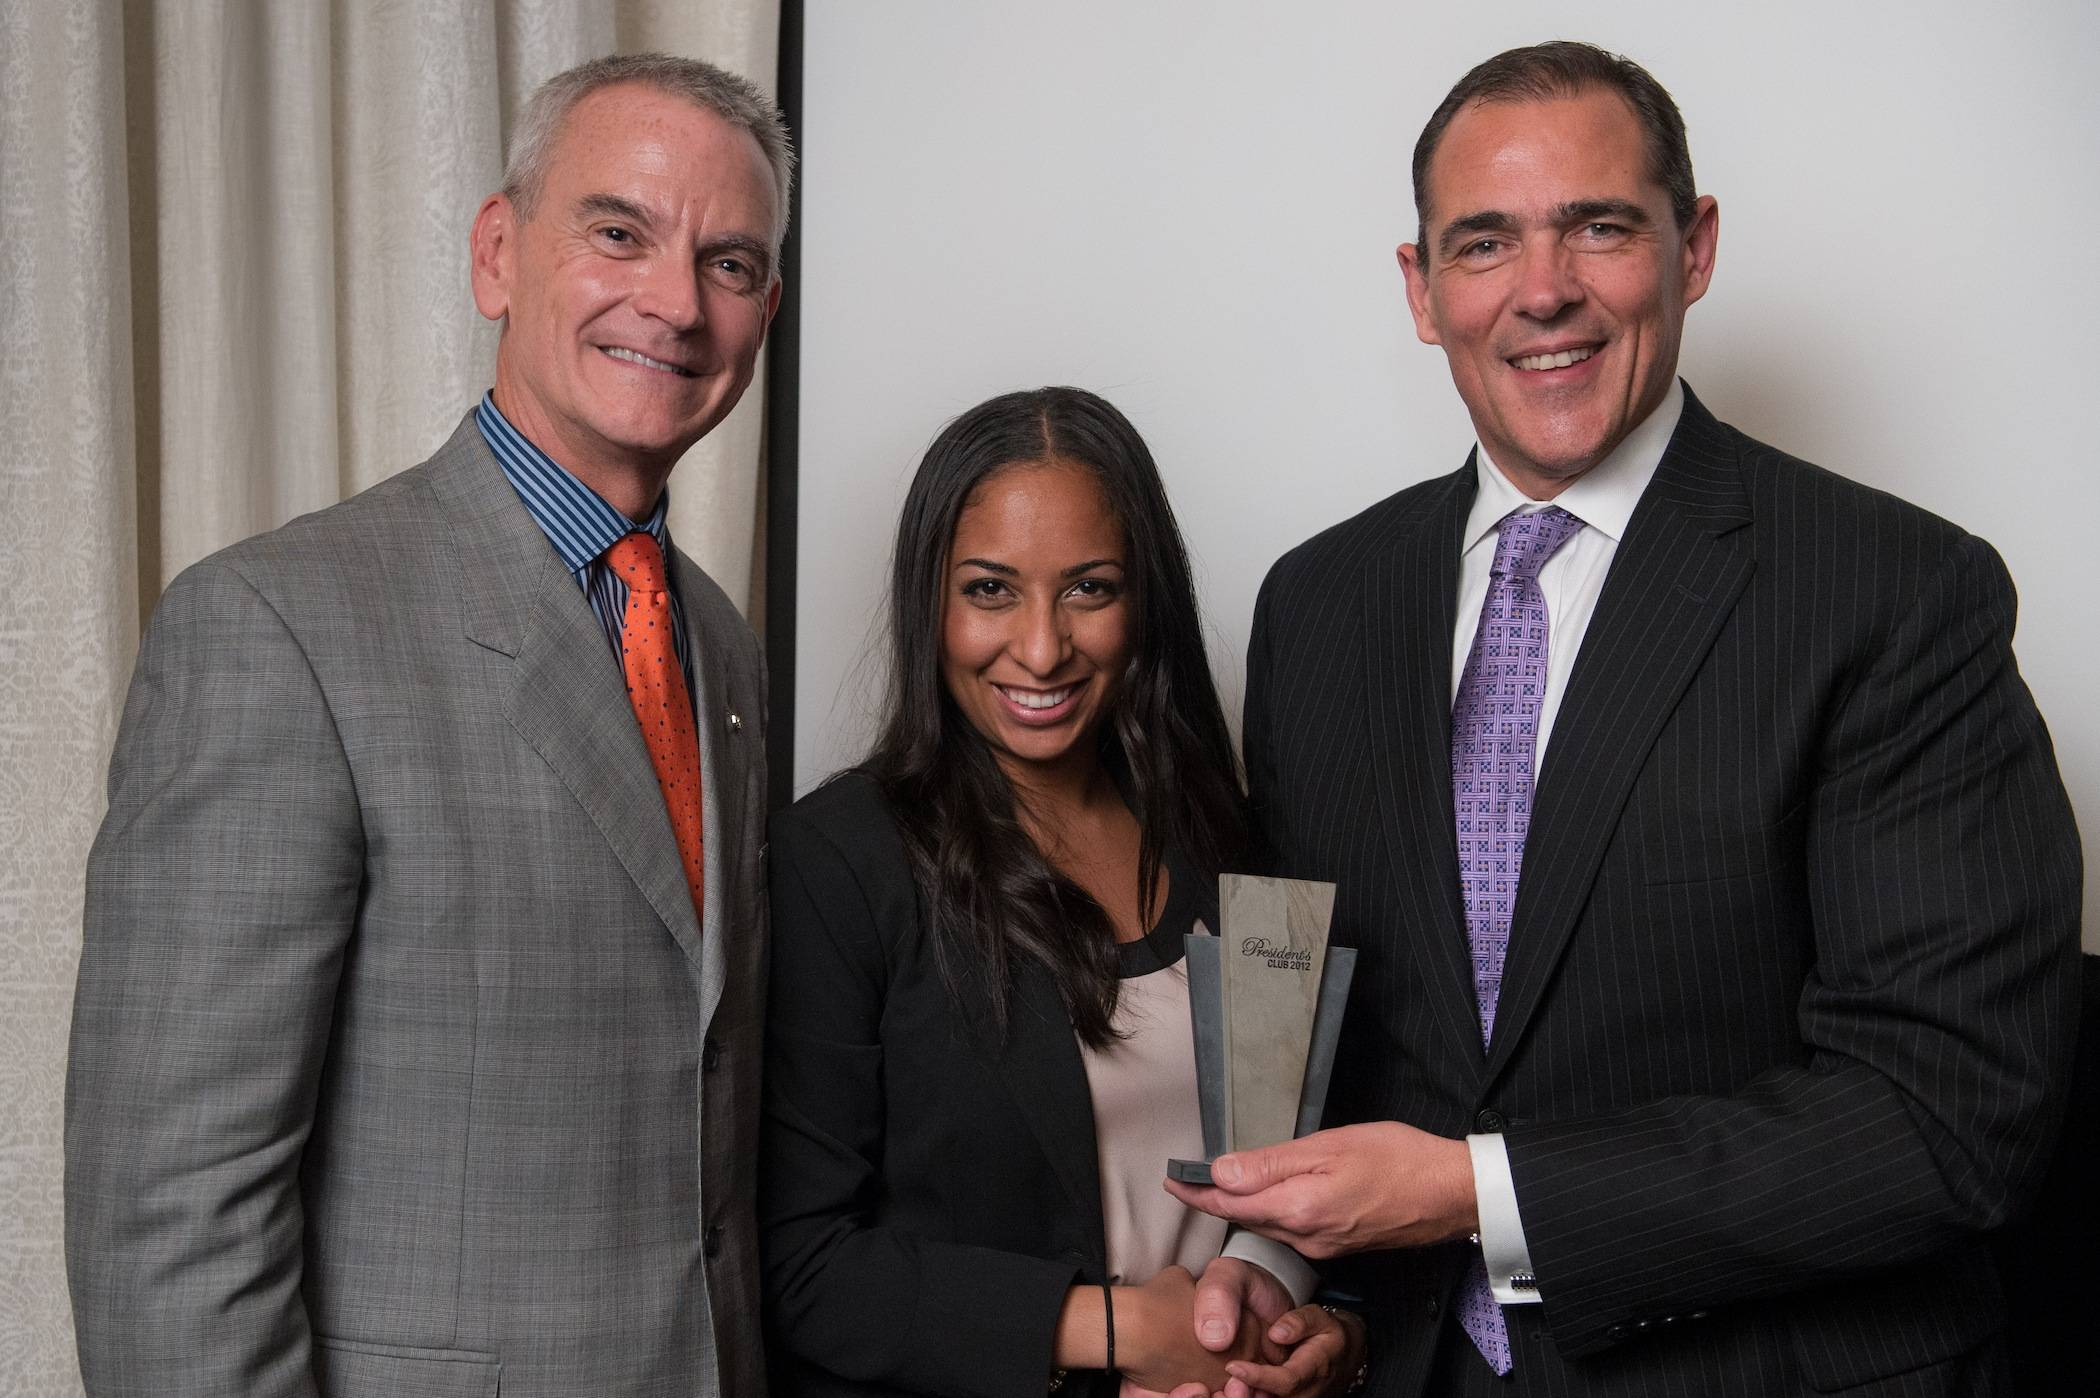 From left to right: James S. Metcalf, USG Corporation chairman, president and CEO; Miya Russell, architectural sales representative; Chris Griffin, executive vice president of operations, USG Corporation and president, United States Gypsum Company.